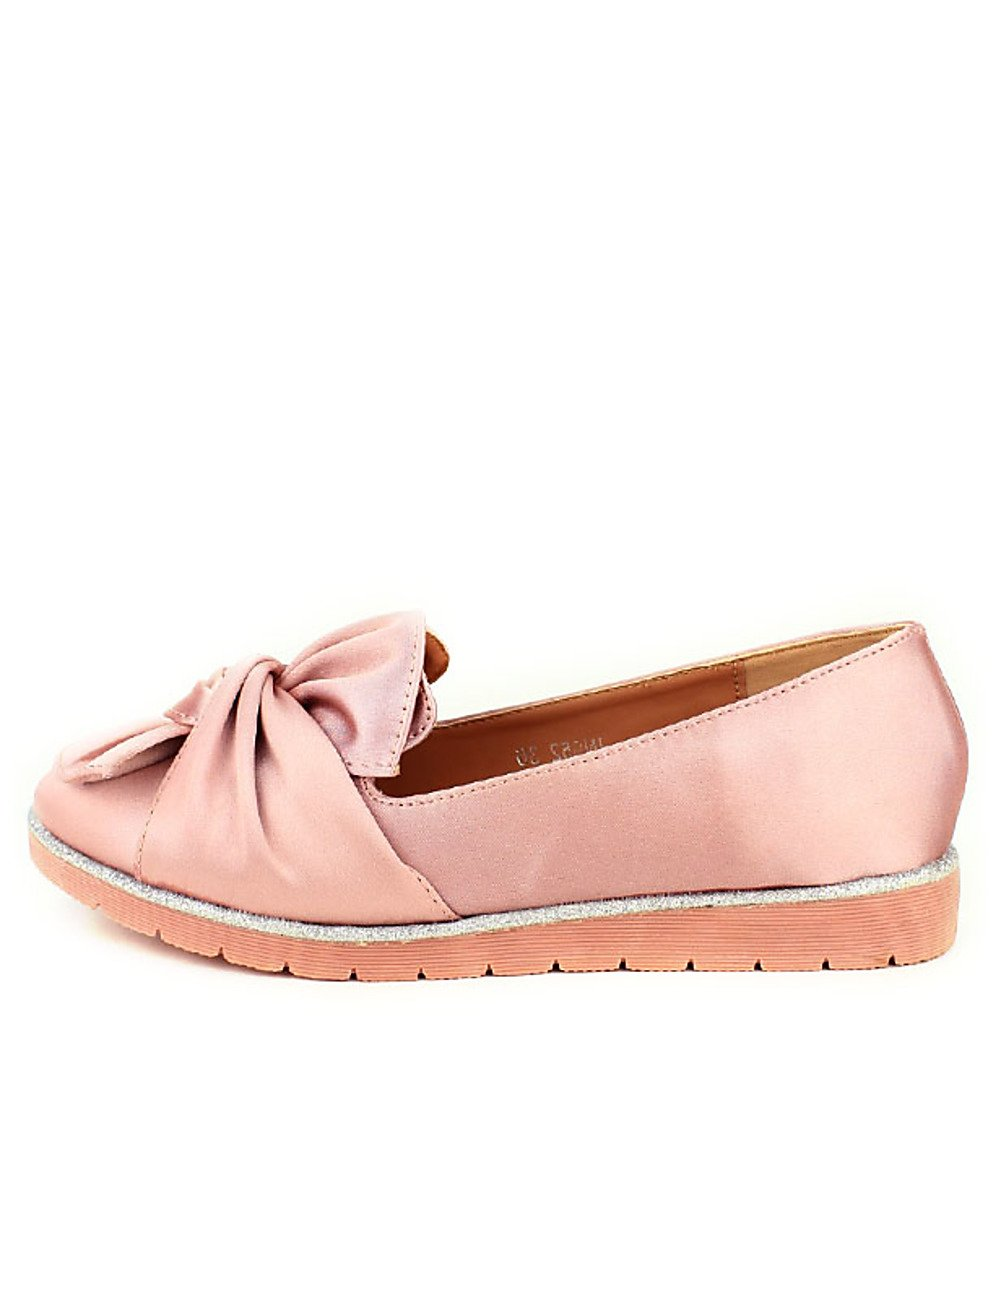 Cendriyon, Derbies Pinks Satinée Libra Derbies Pop Cendriyon, Pinks Chaussures Femme Rose 5517820 - shopssong.space